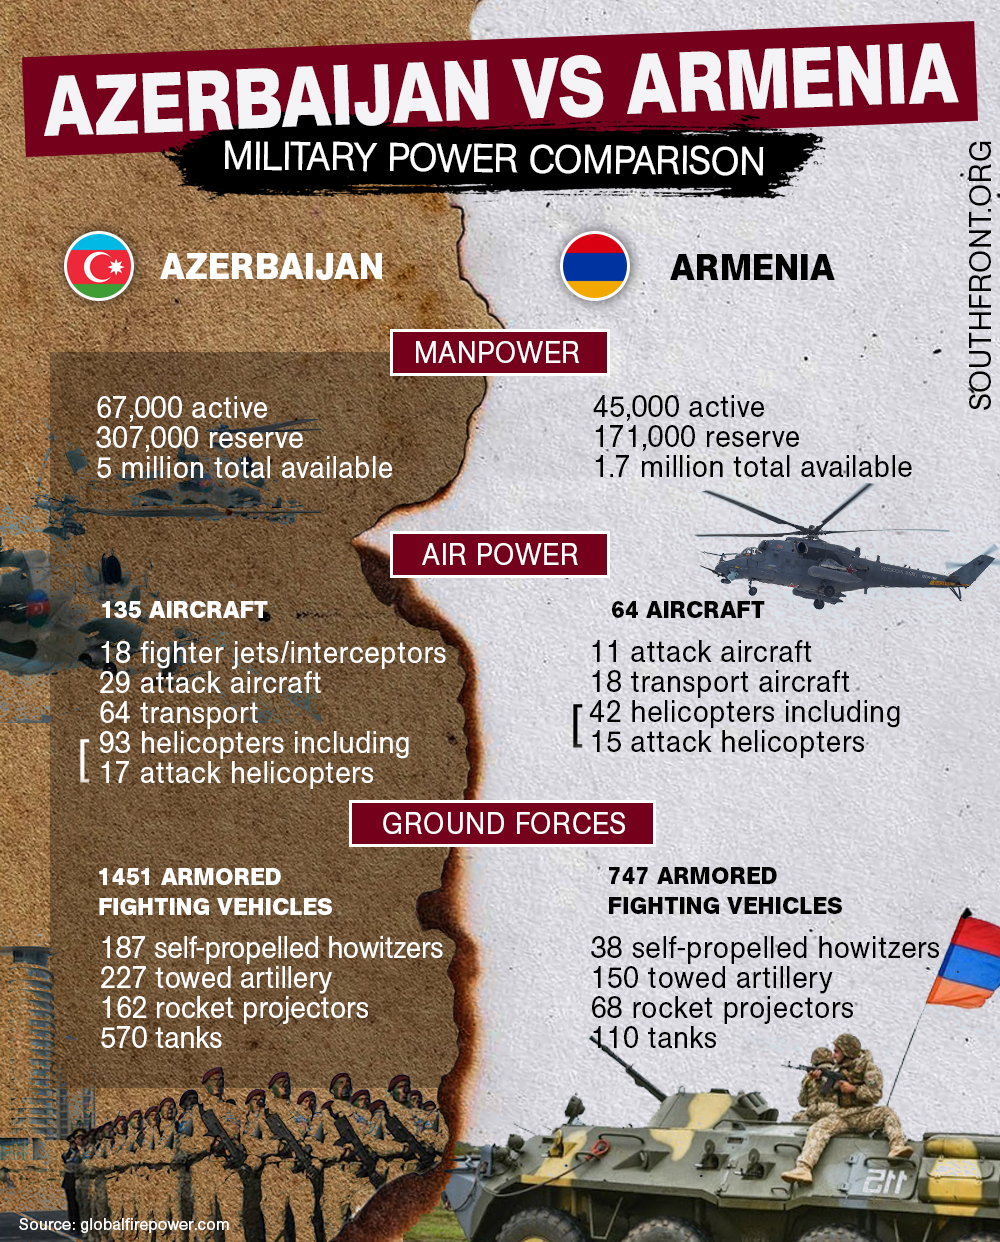 Azerbaijan And Armenia's Forces: The Numbers